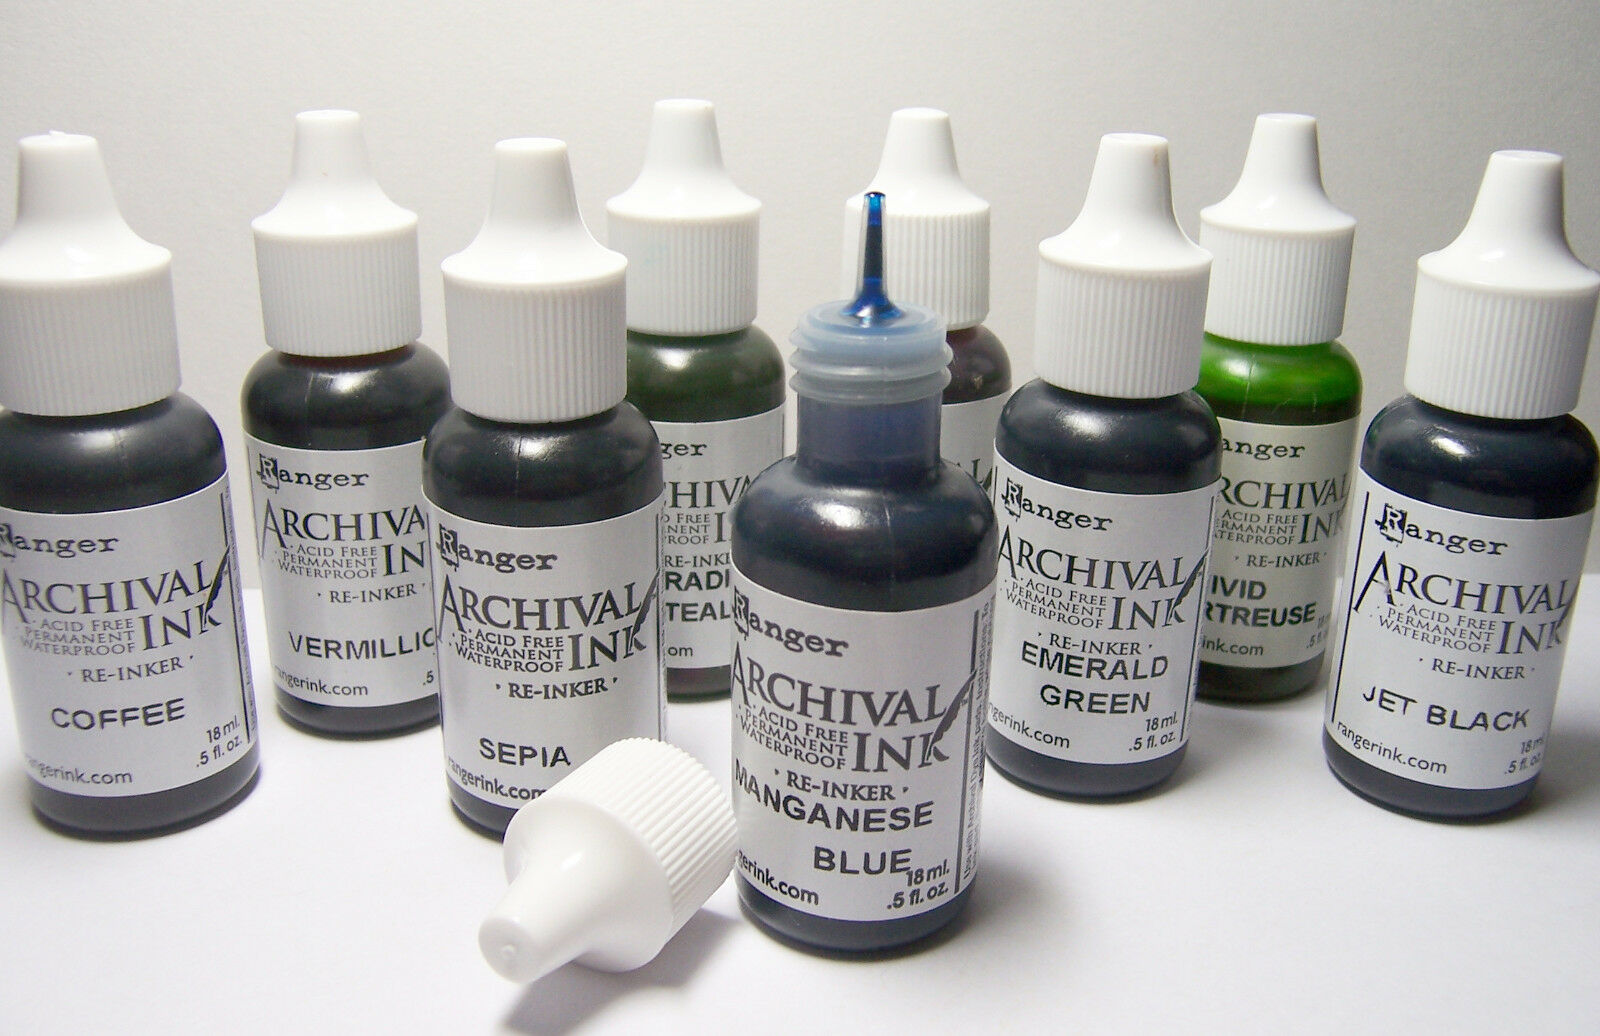 RANGER Archival Reinker .5oz Refill Ink for Stamp Pads Select from 55 colors